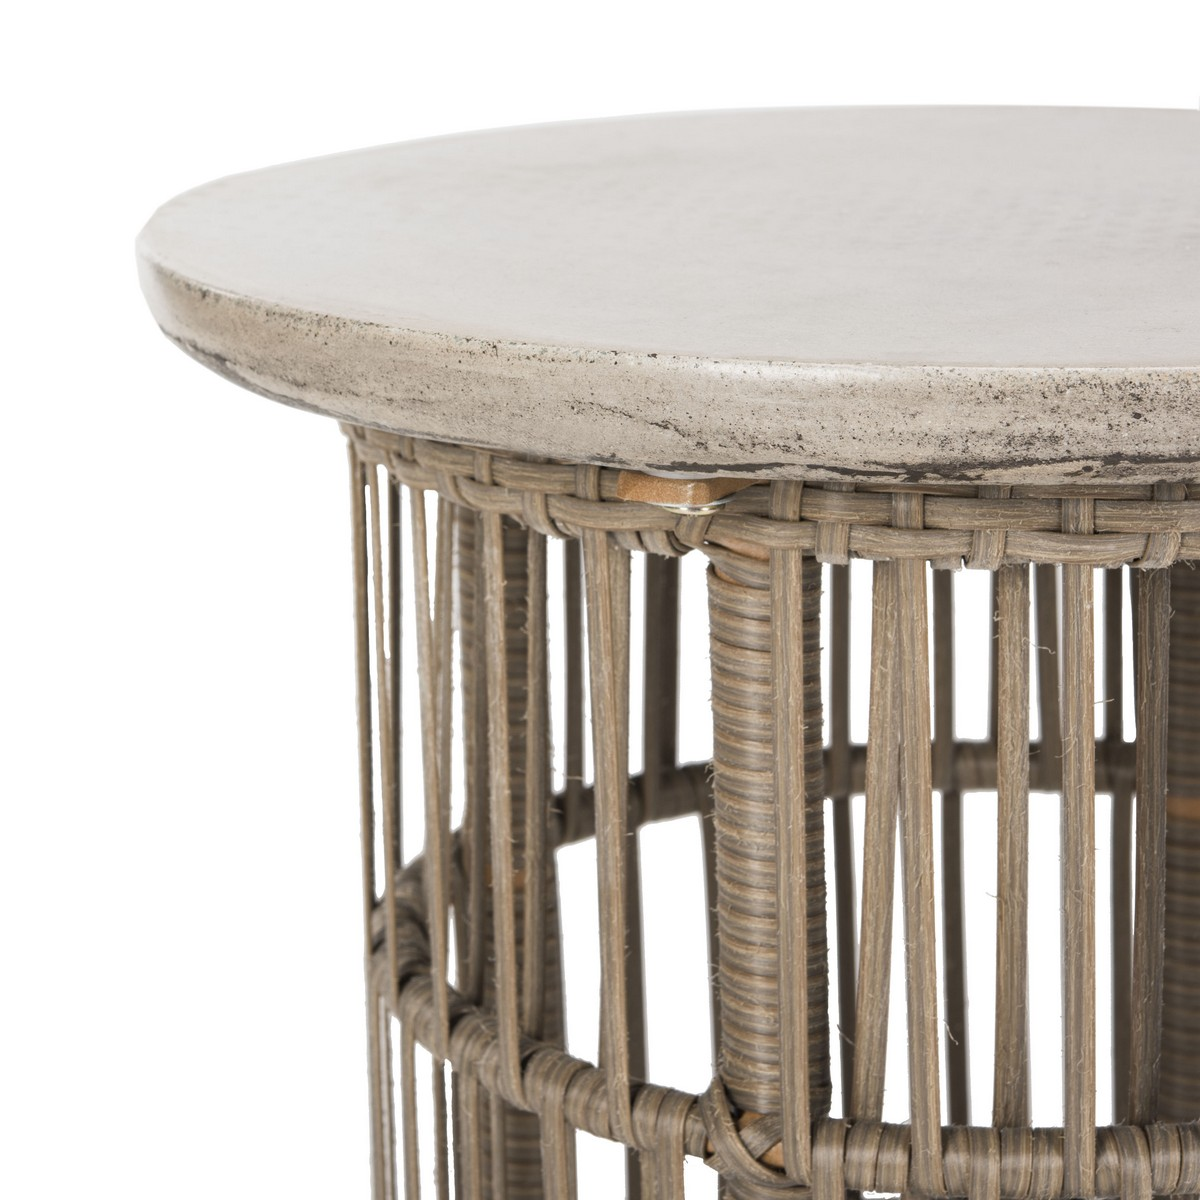 Rattan Table Concrete And Rattan Side Table